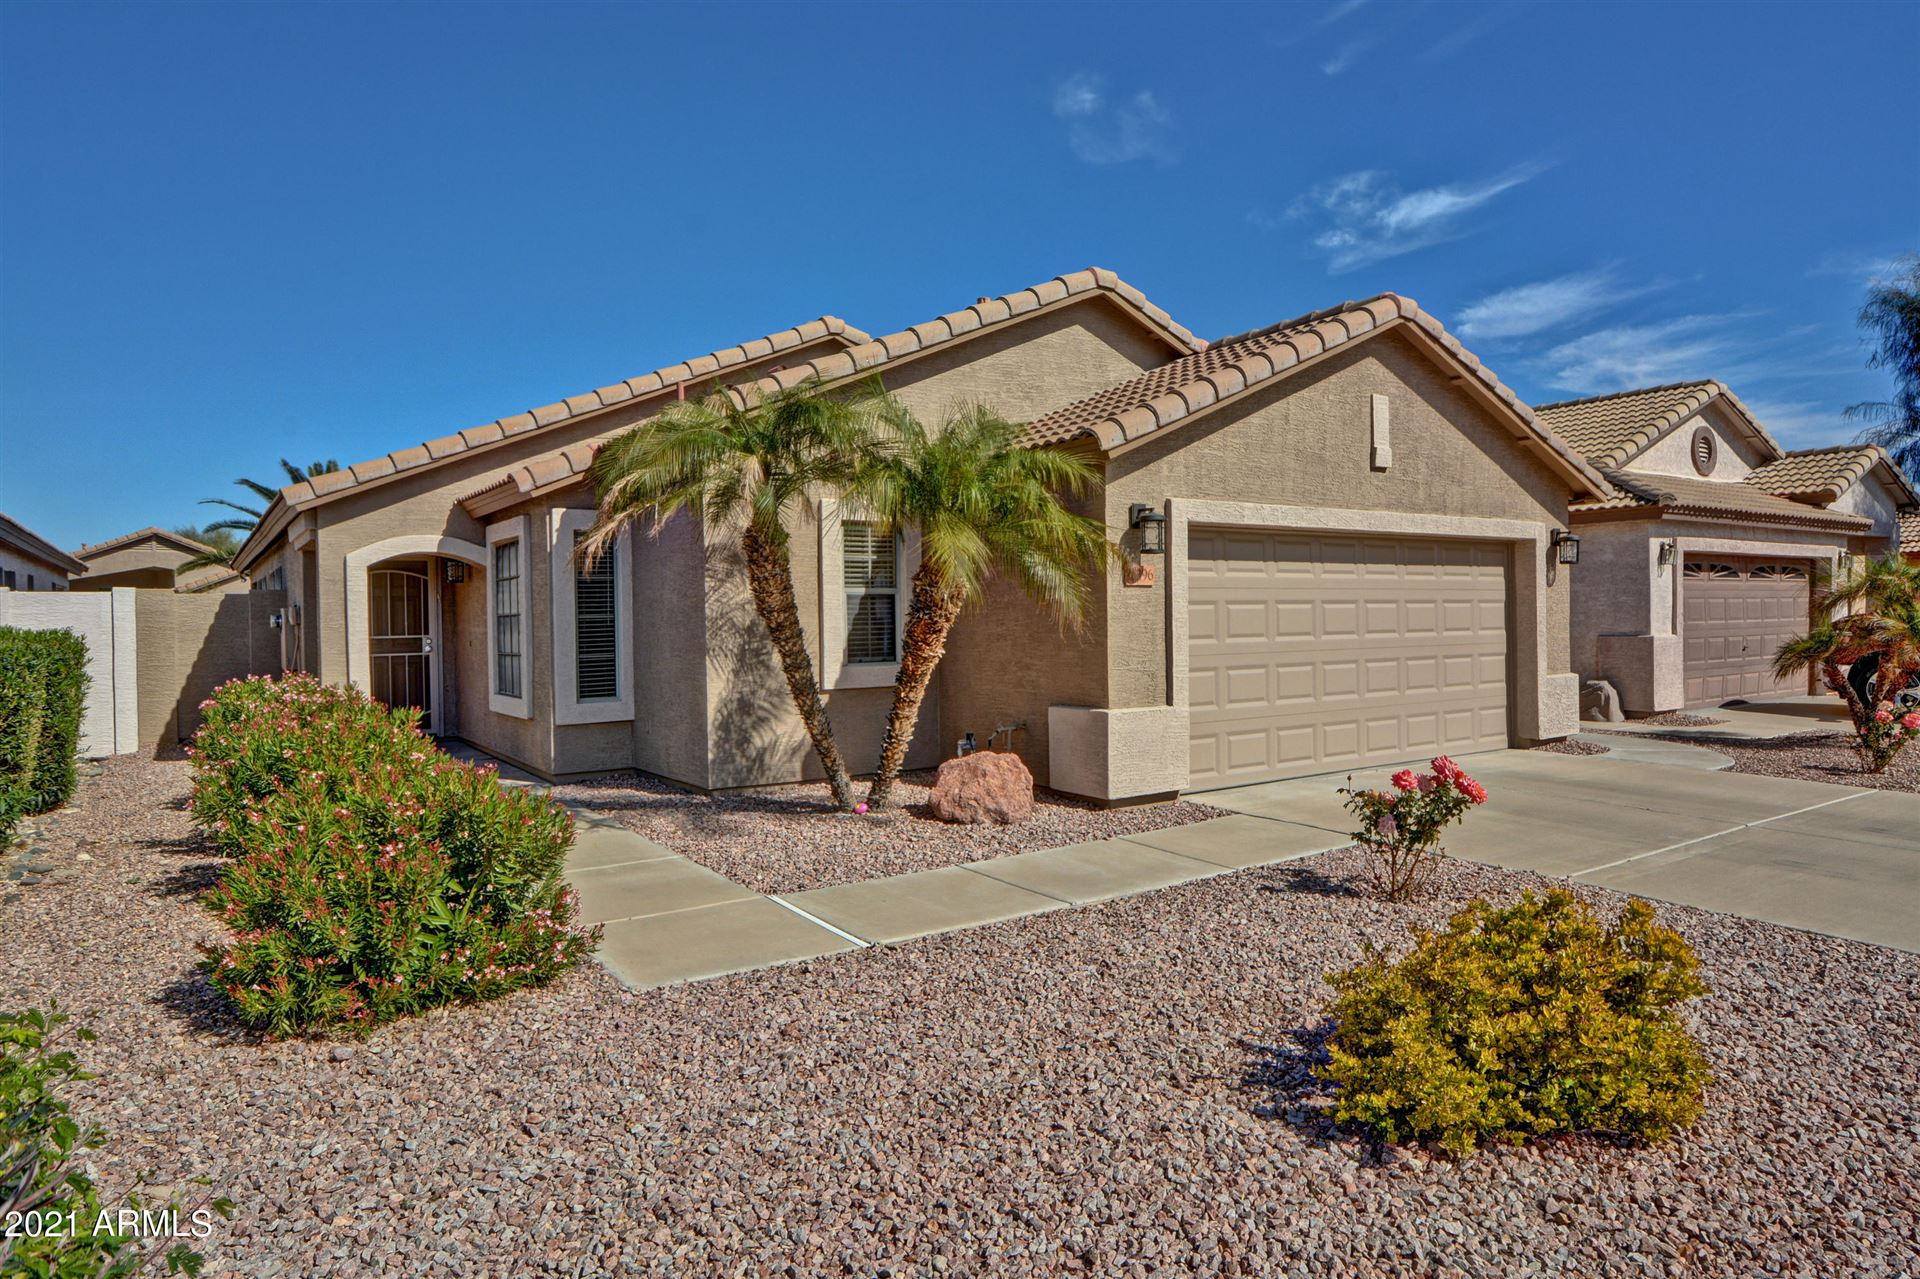 Photo of 10396 W TONOPAH Drive, Peoria, AZ 85382 (MLS # 6199952)